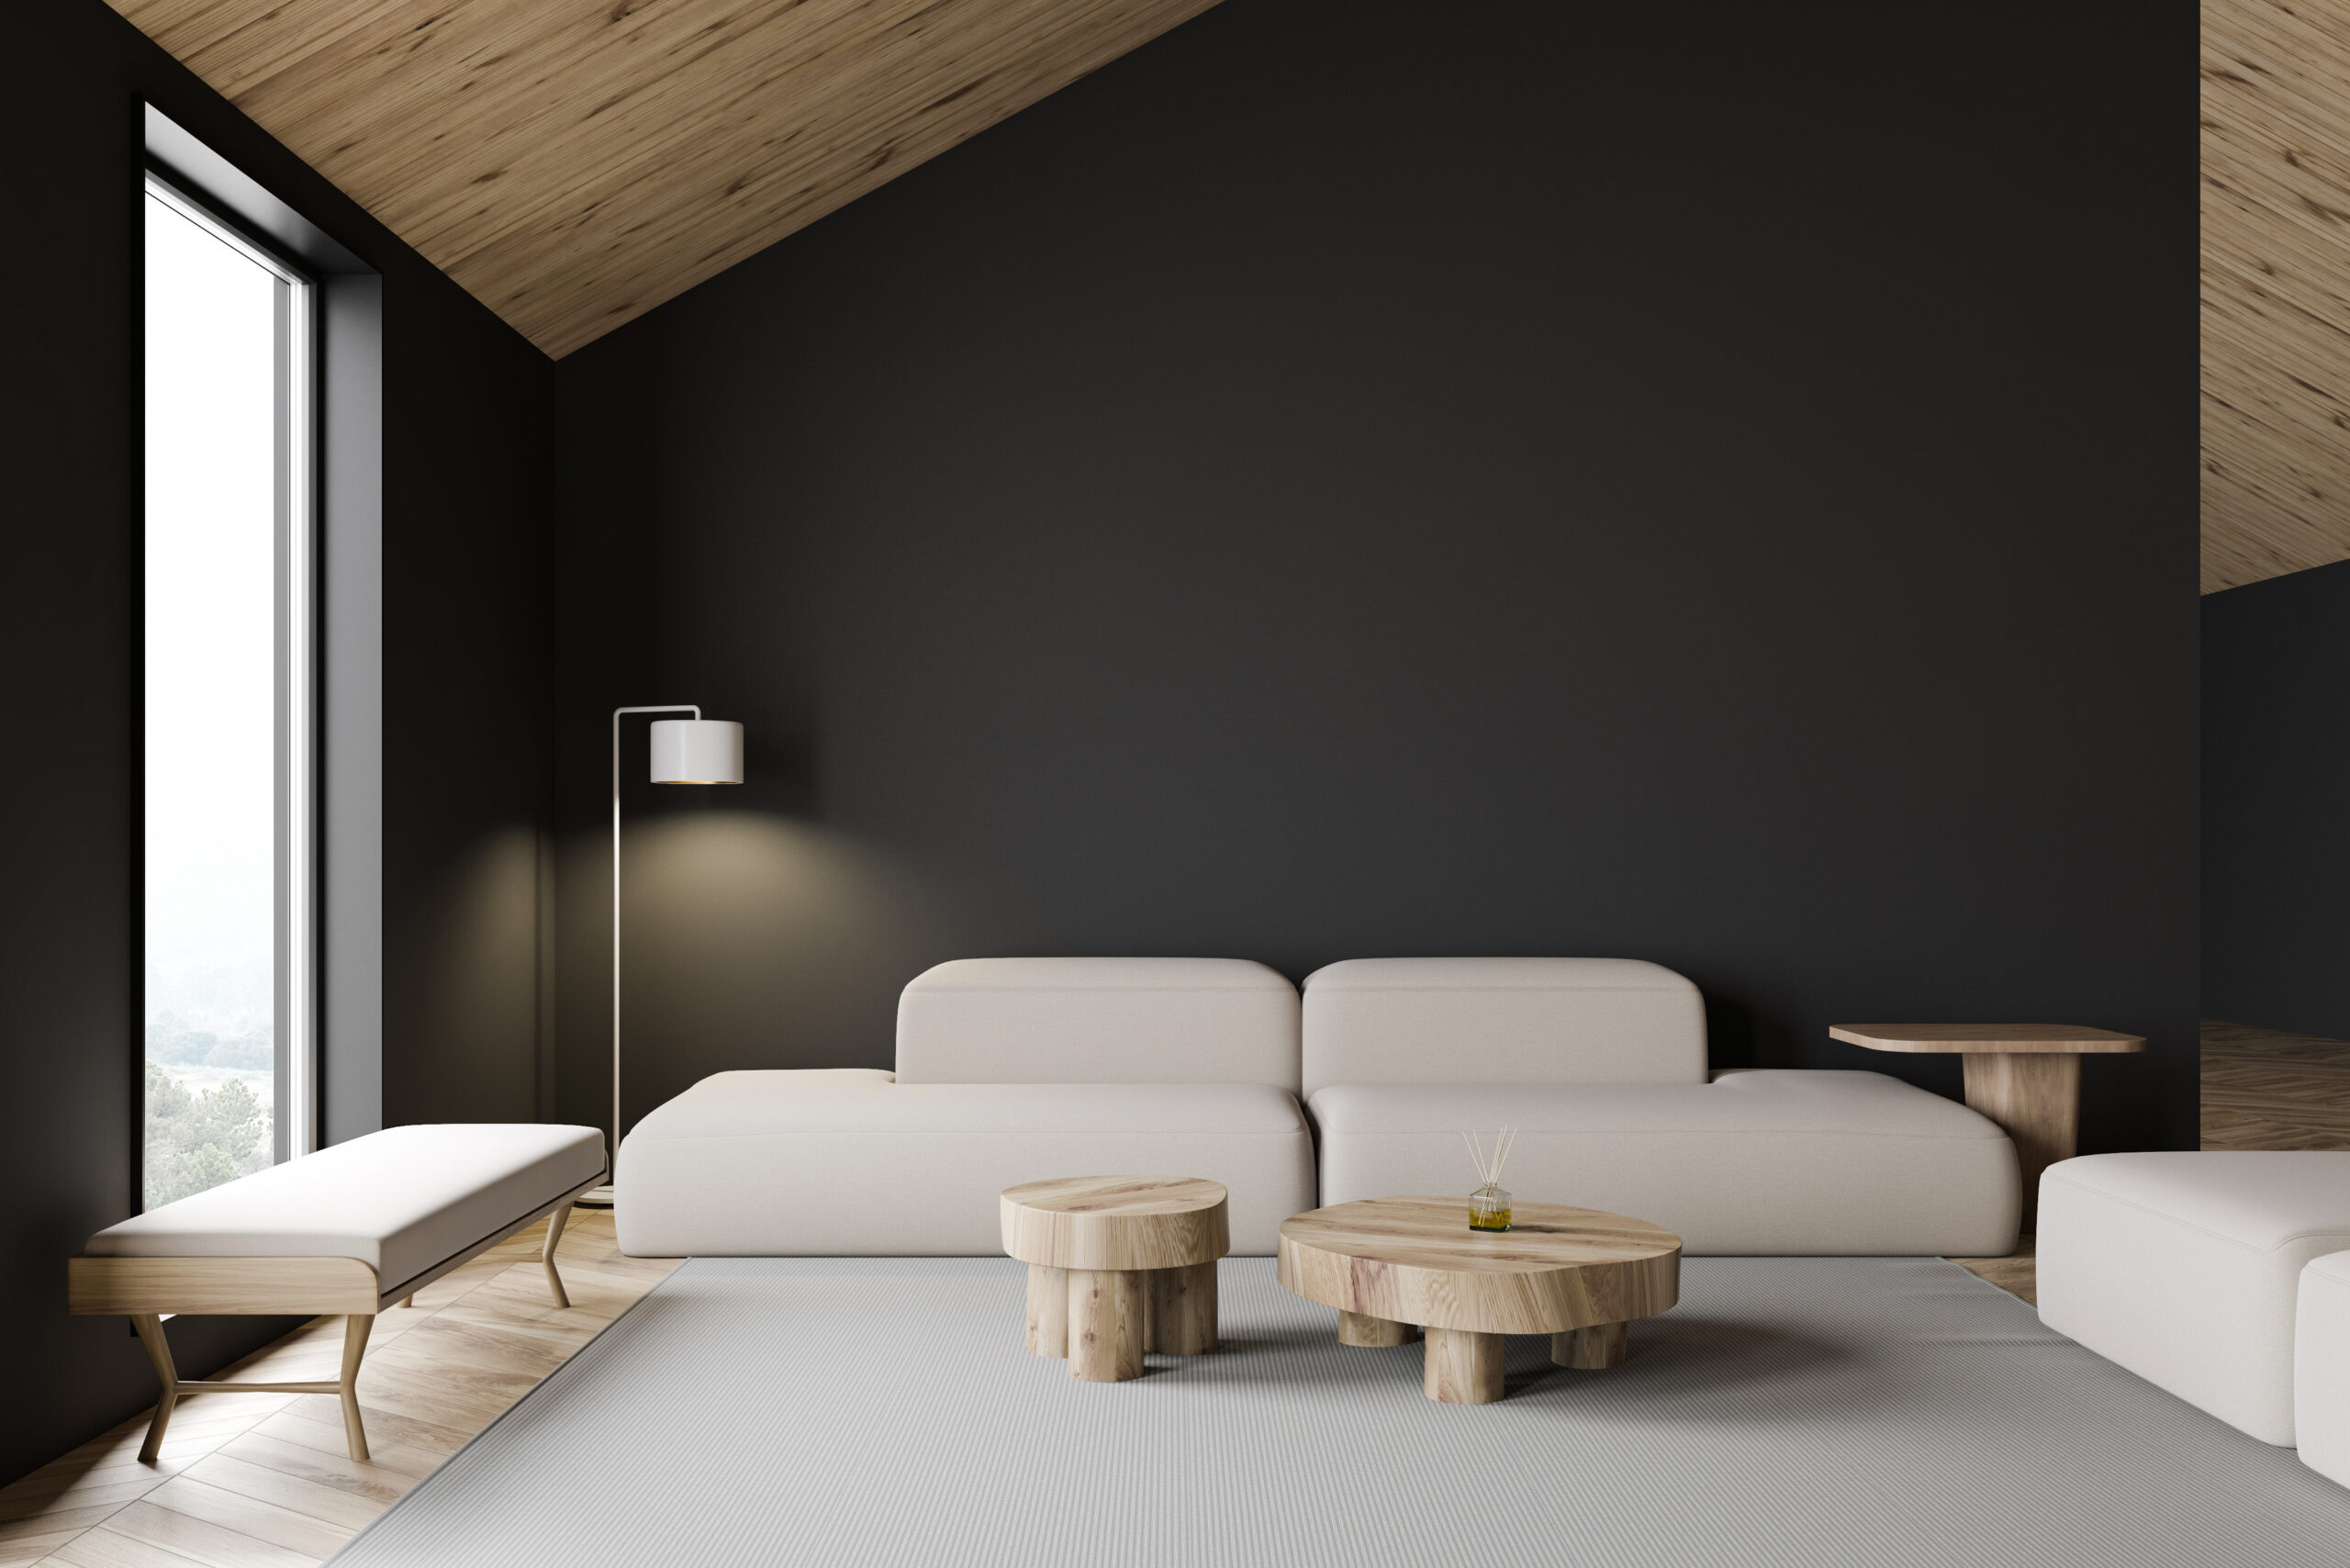 Interior of stylish attic living room with gray walls, wooden floor, comfortable white sofa and bench standing near crude round tables. 3d rendering